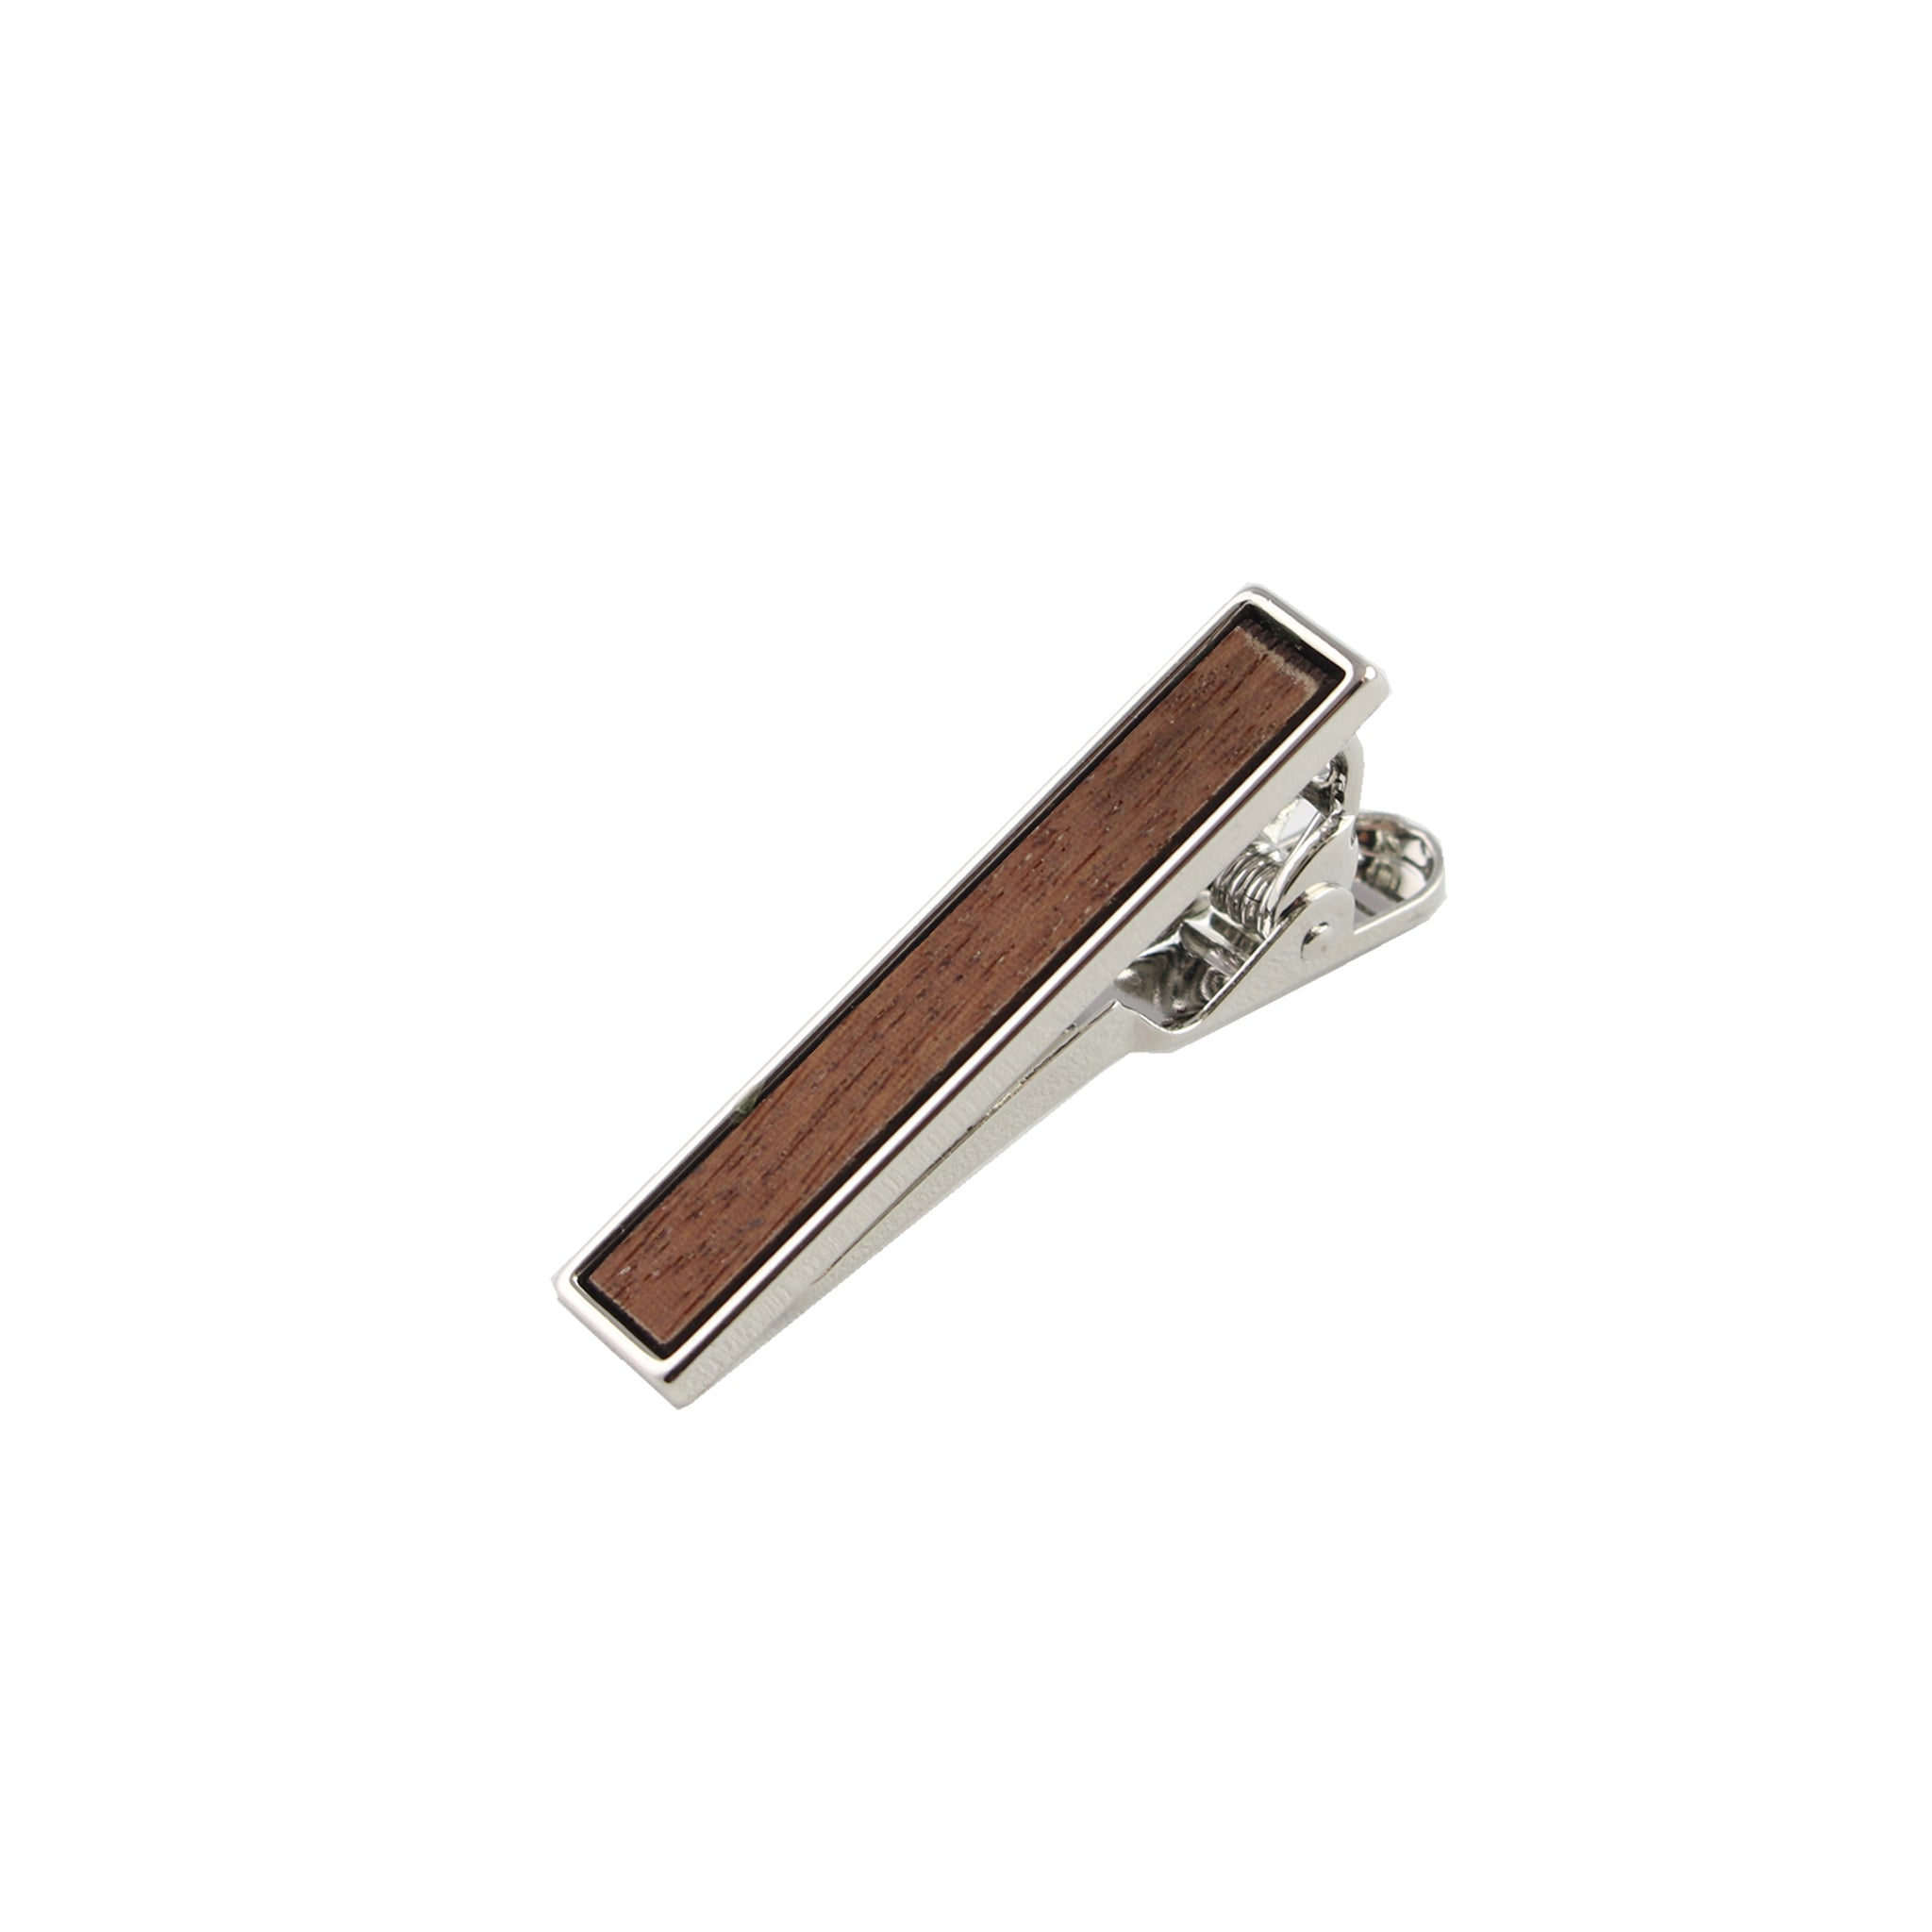 Macaranduba Wooden Inlay-Silver Tie Bar from DIBI